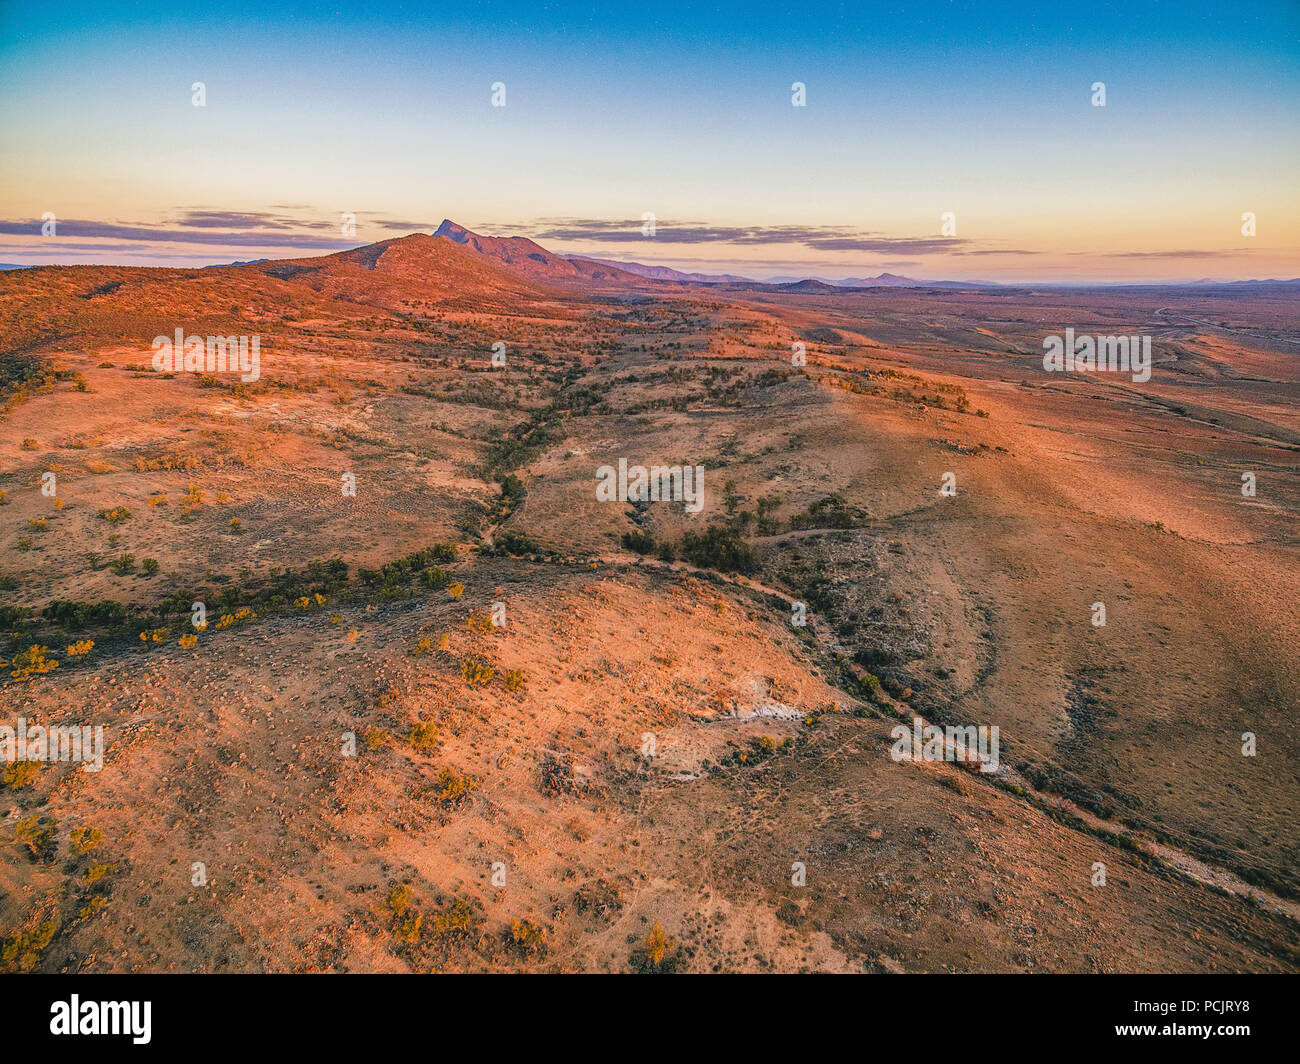 Red hills and rugged peak at sunset in Flinders Ranges, South Australia - Stock Image